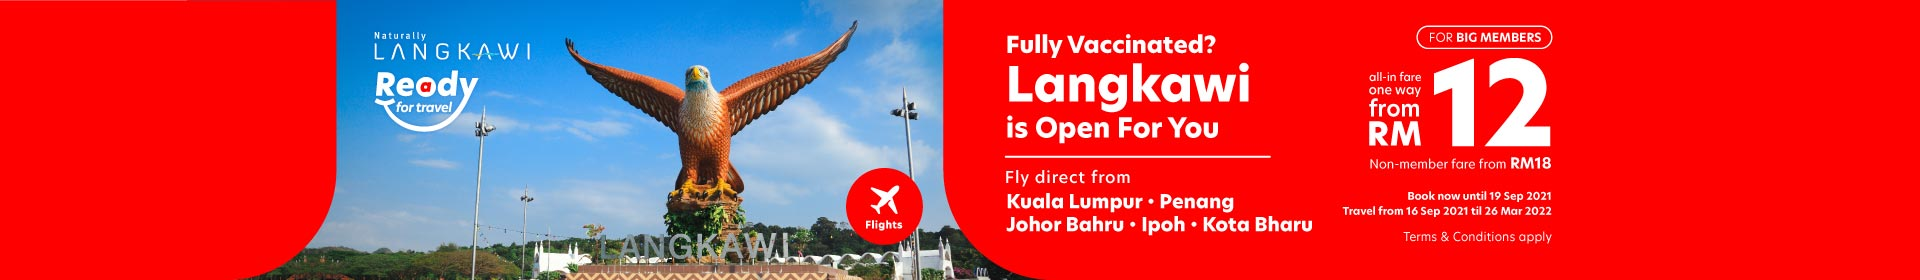 Langkawi is Open For Travel